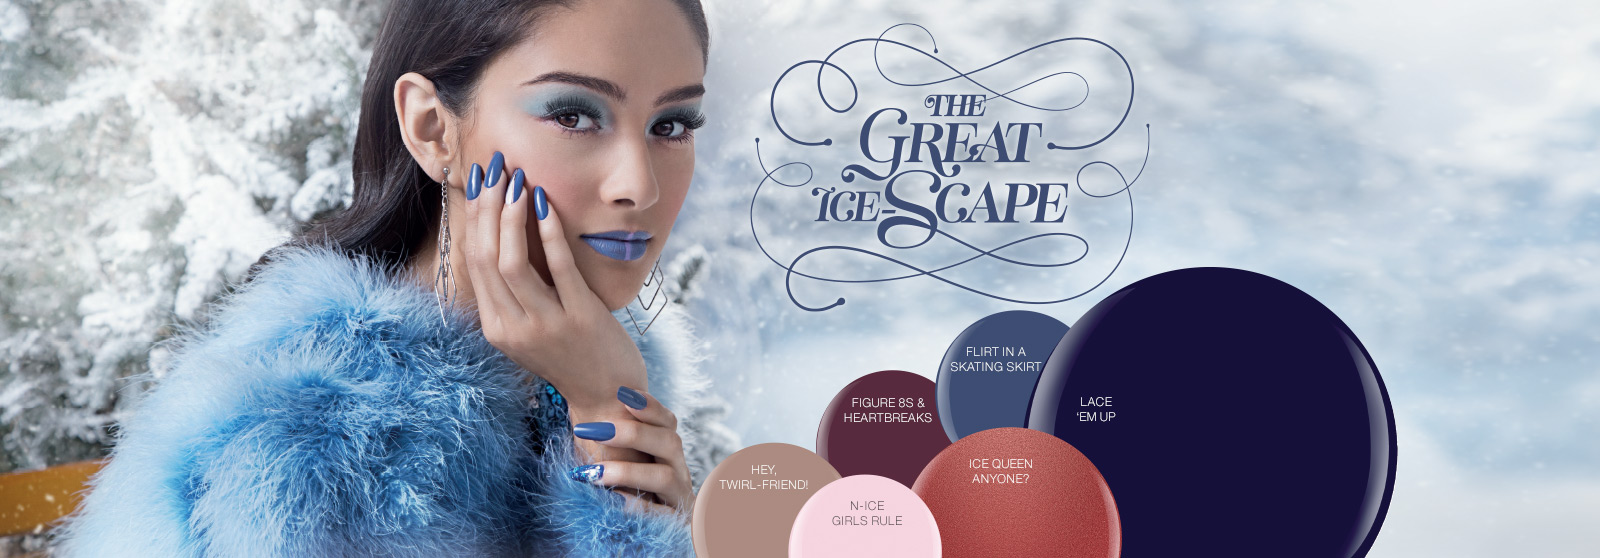 Gelish Roma: The Great Ice-Scape